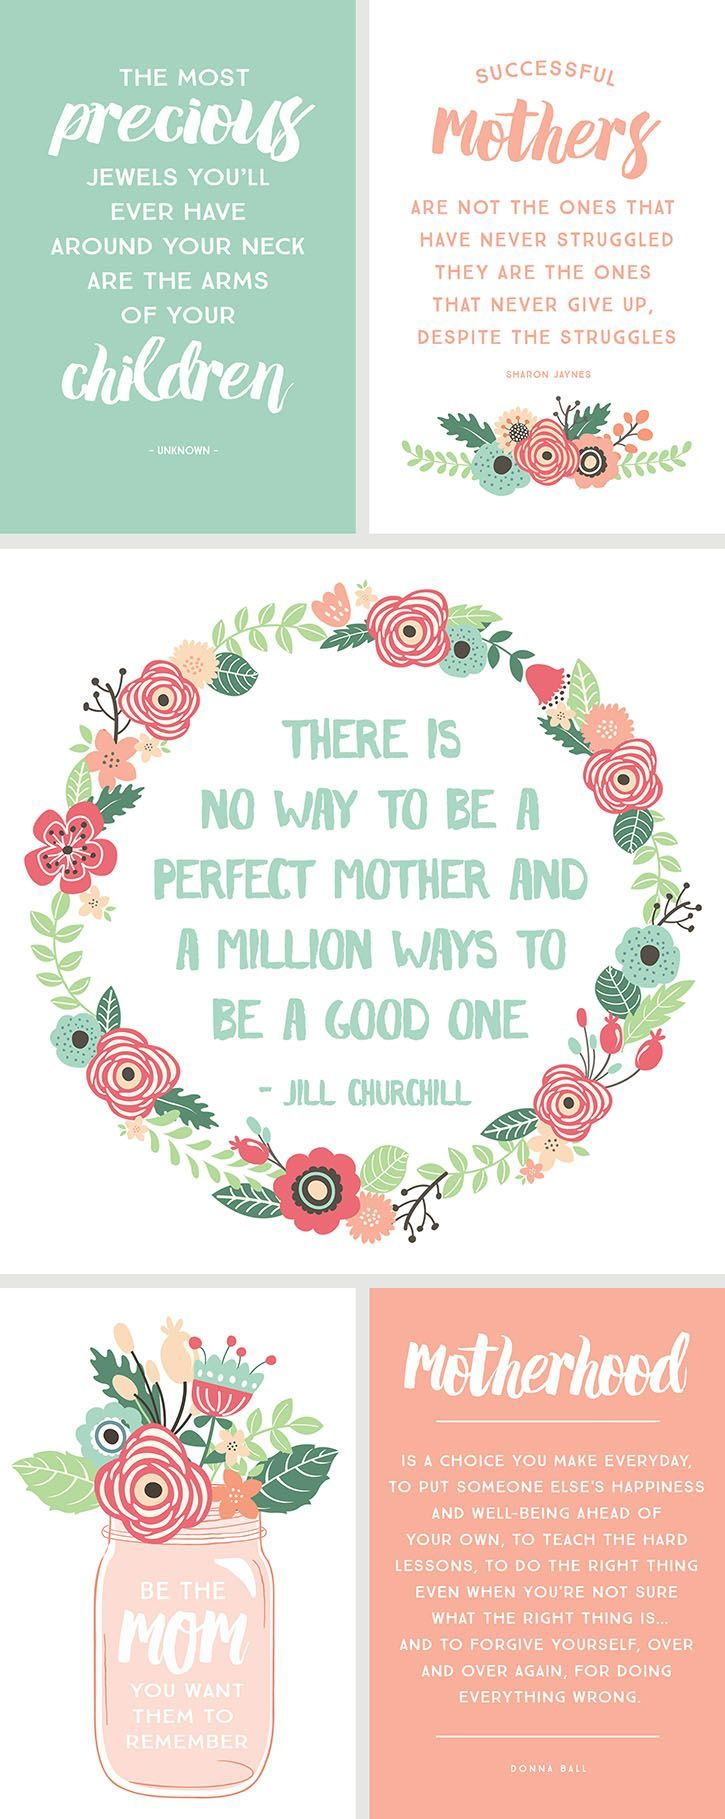 FREE 5 Inspirational Quotes for Mother's Day from Simple As That